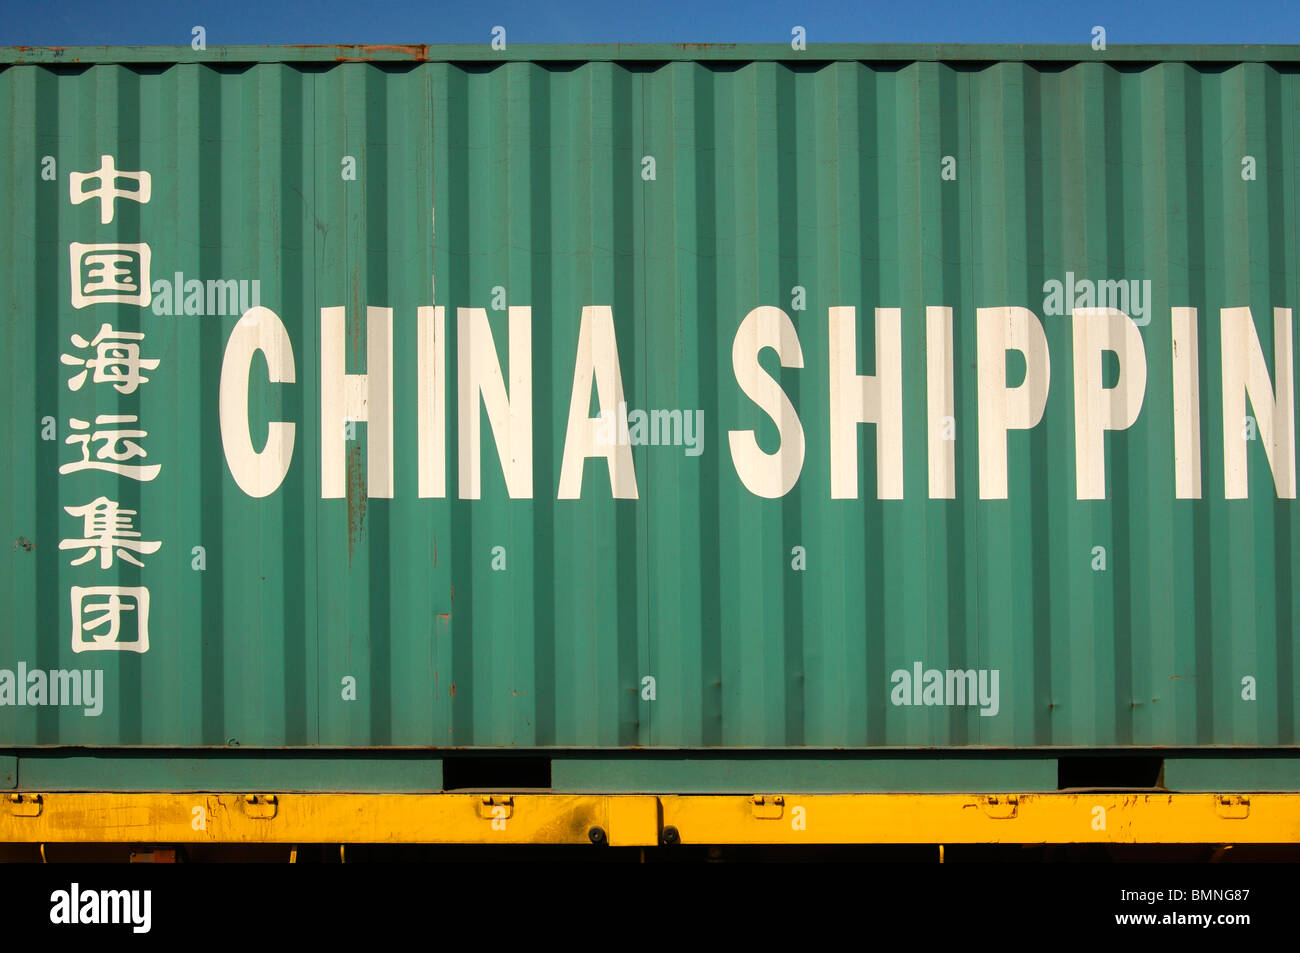 Container Of The Shipping Company China Shipping Container